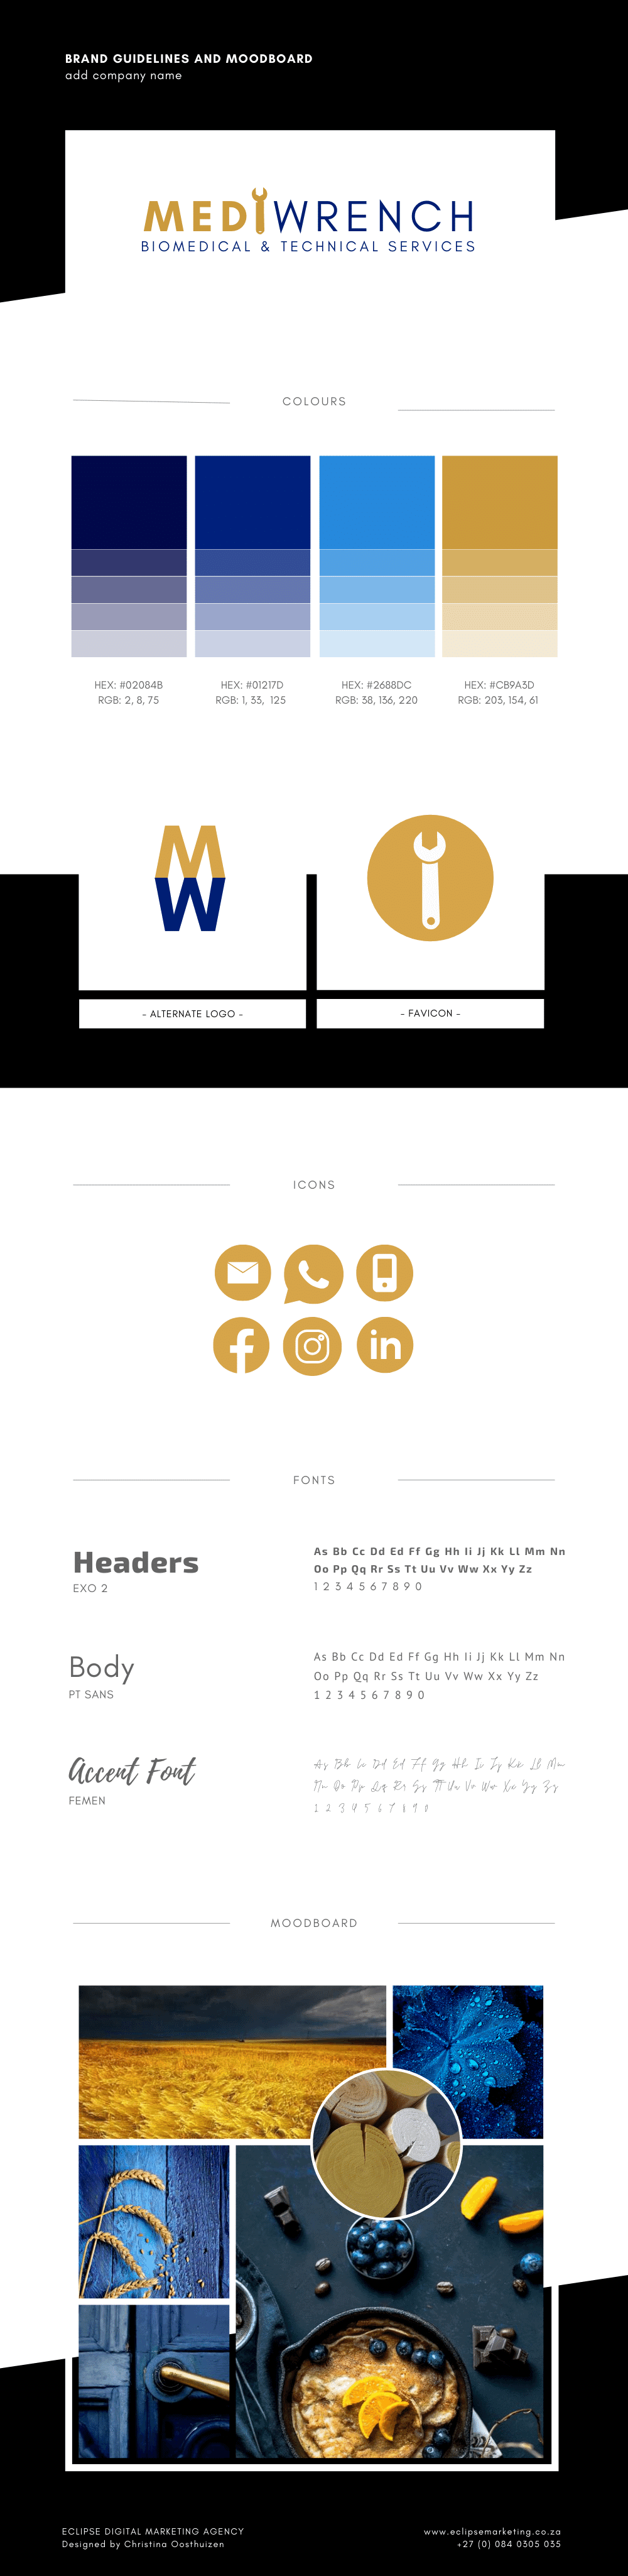 Eclipse Digital Marketing Agency - Mediwrench Brand Board (Final)